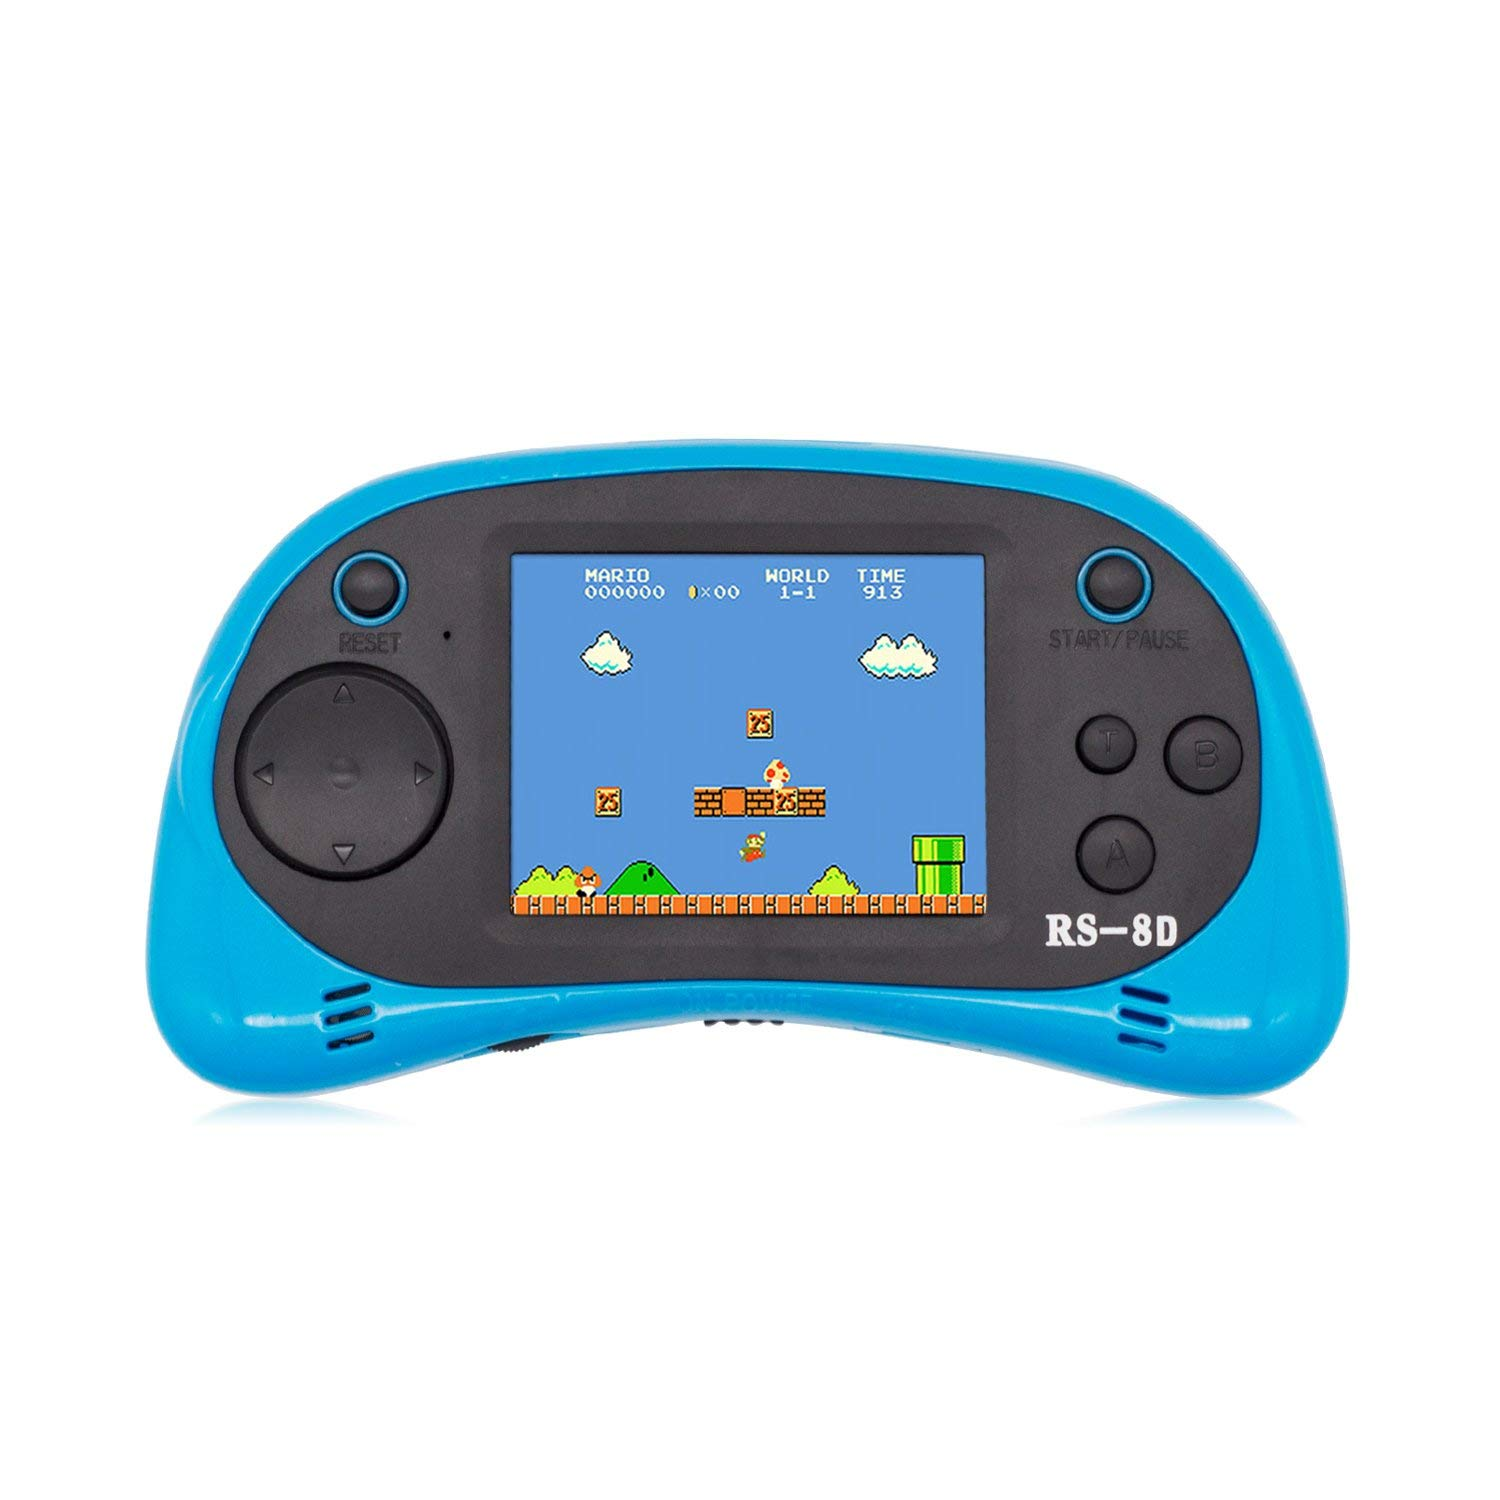 Hades RS-8D Kids Handheld Retro Game Console Built-in 260 Classic Games TV Video Games with 8 Bit Classic Games for Children (Light Blue)